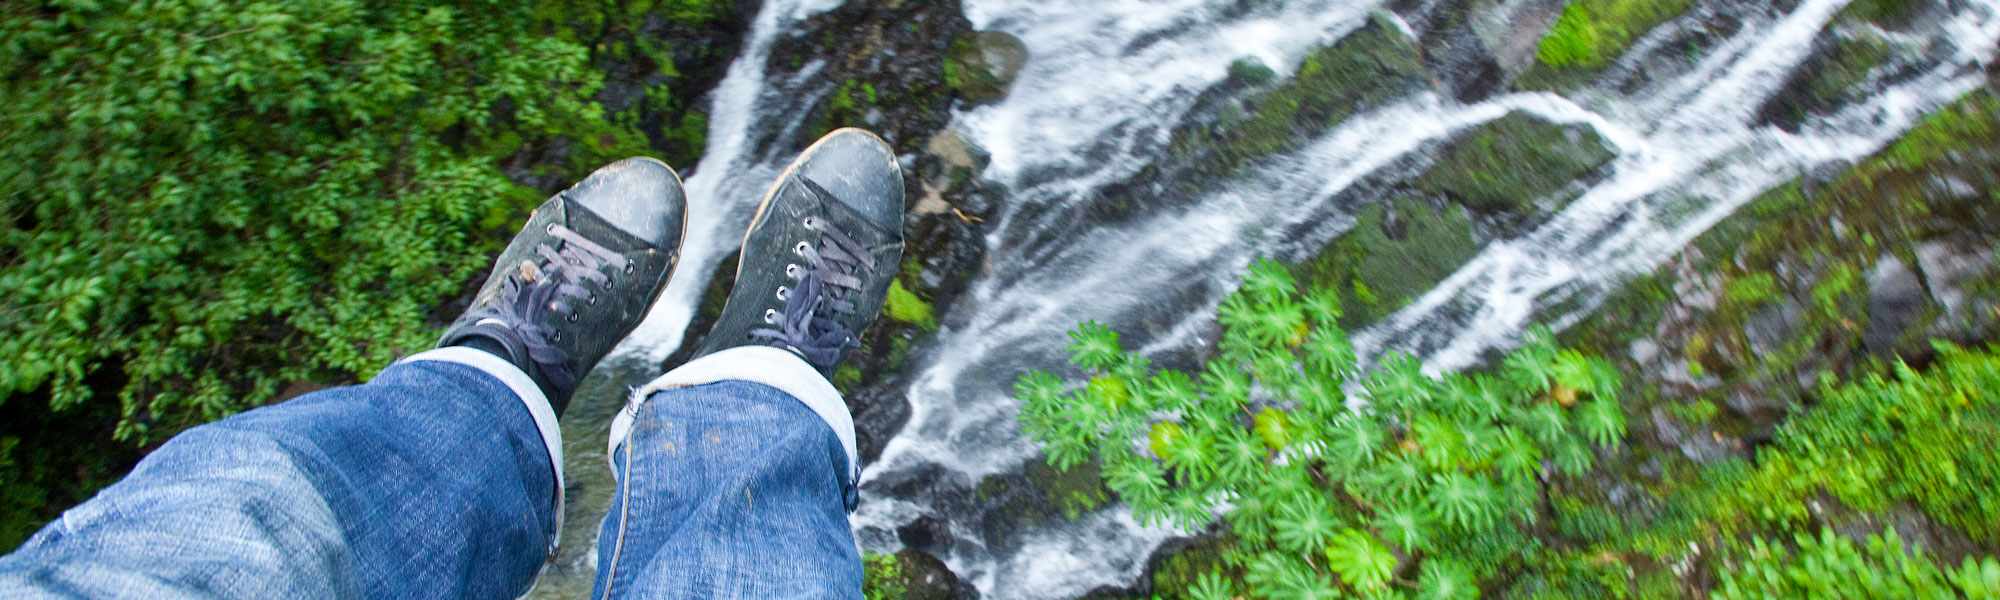 Close up of person's feet riding biplane over waterfall